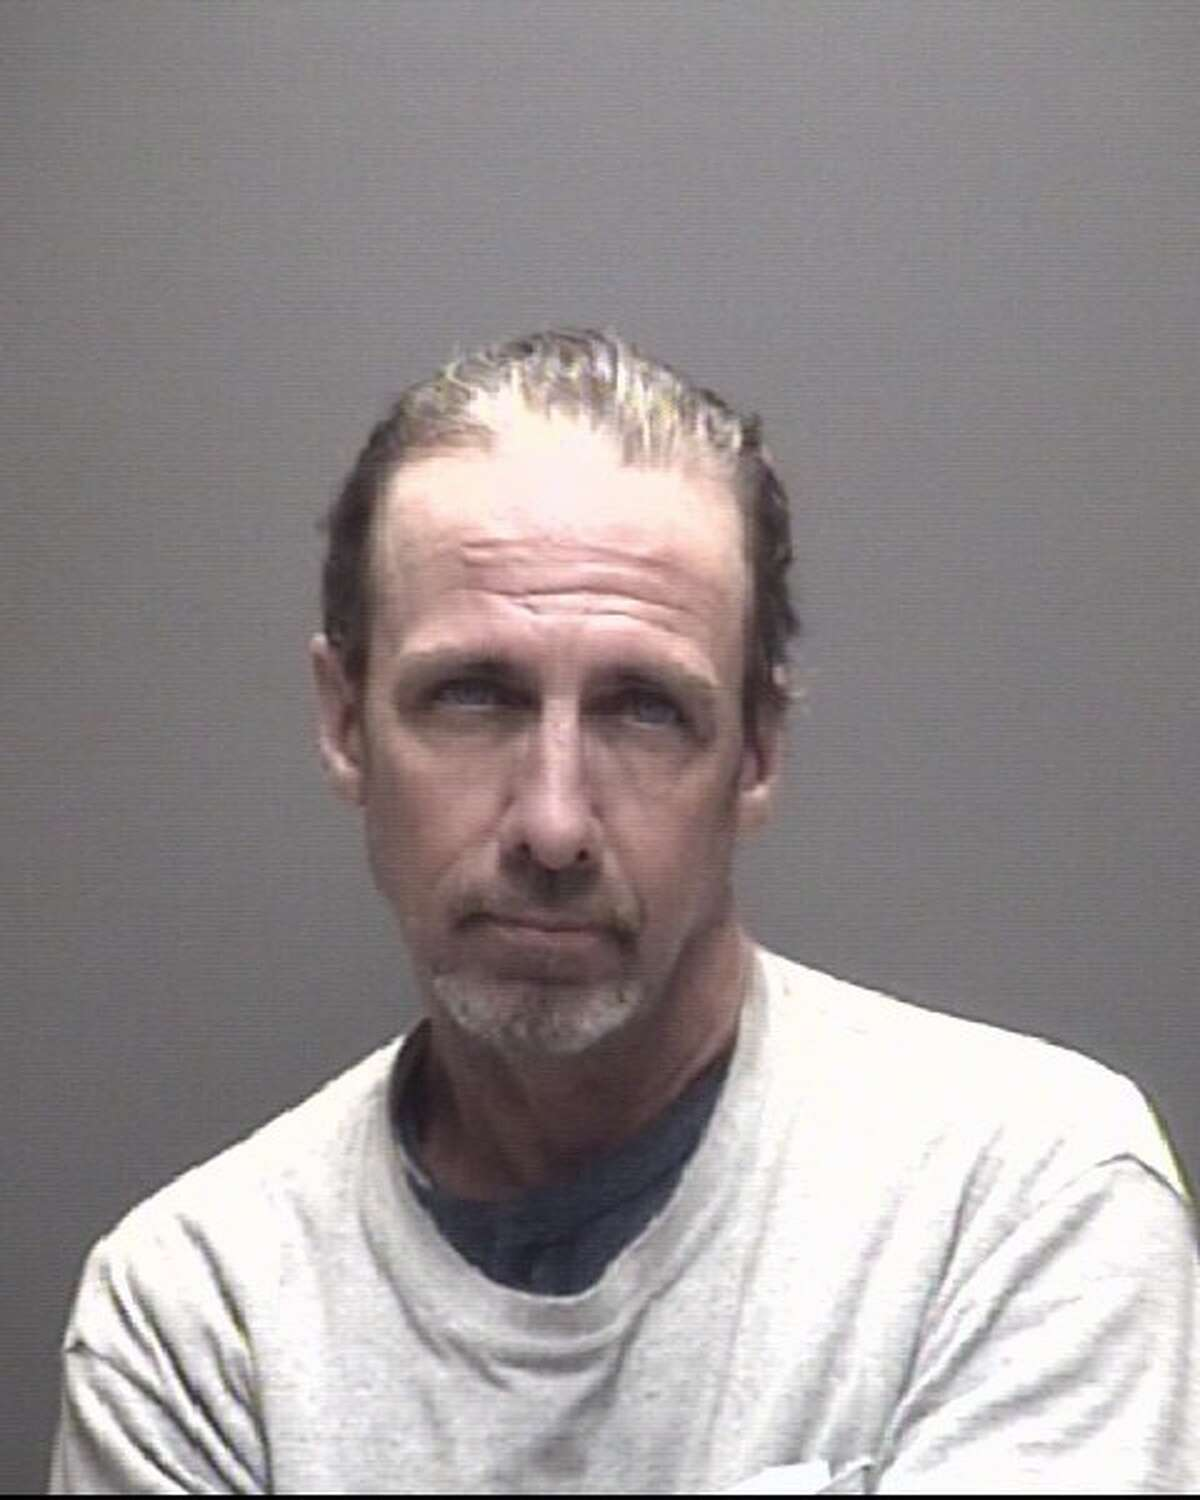 Todd Keahey was arrested on a third or more charge of DWI.